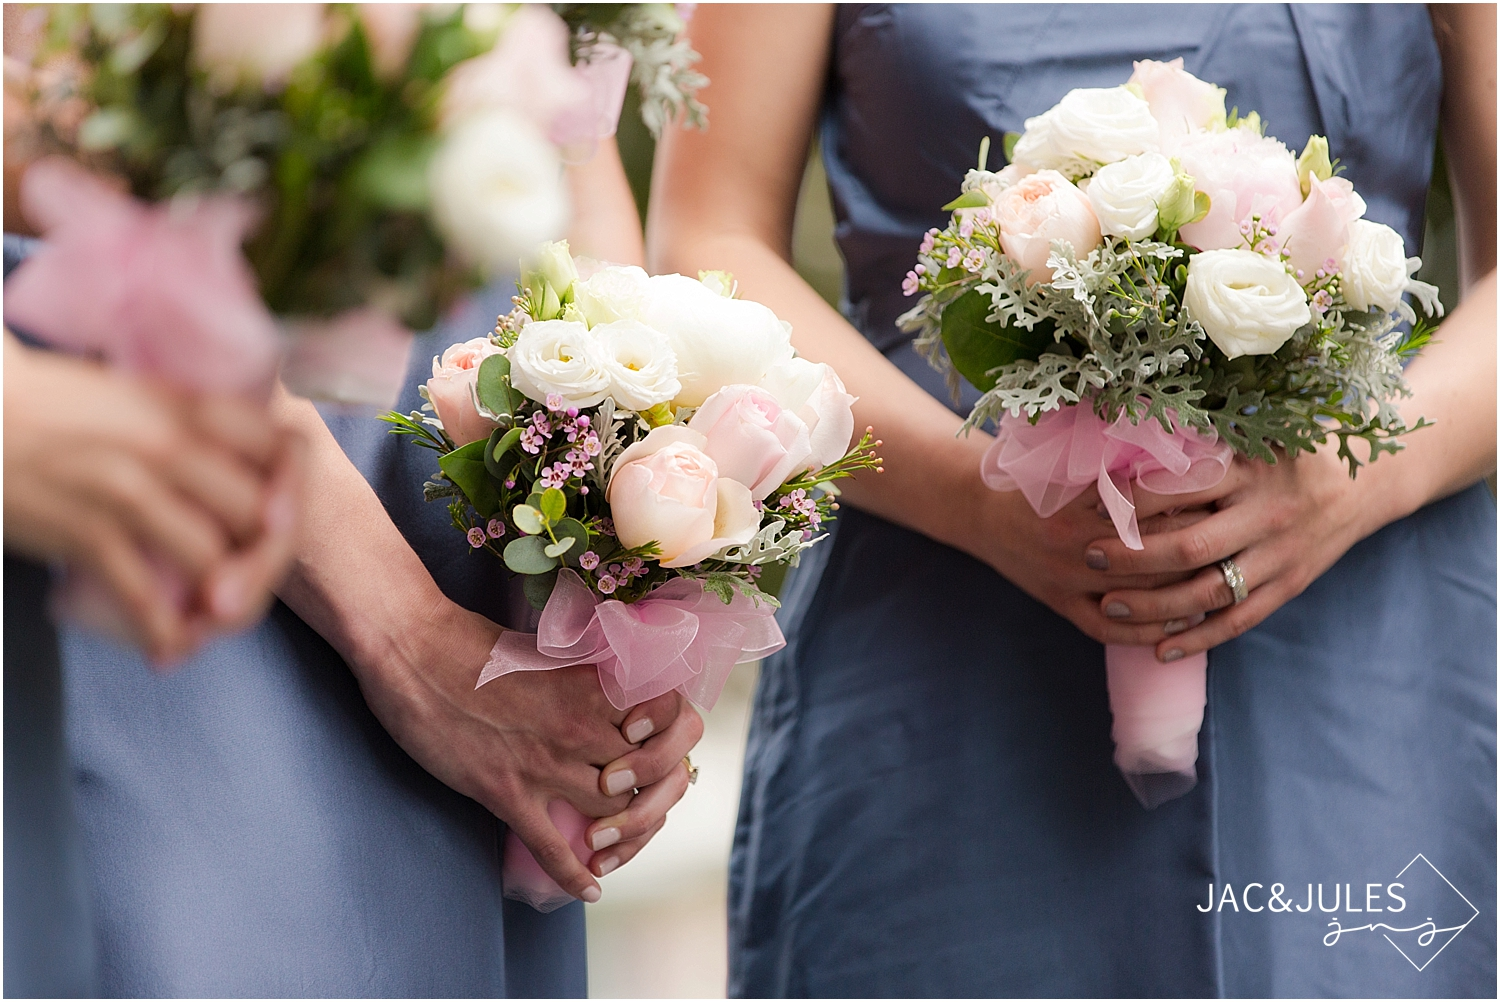 jacnjules photographs peony and rose bridesmaid bouquet in lebanon nj